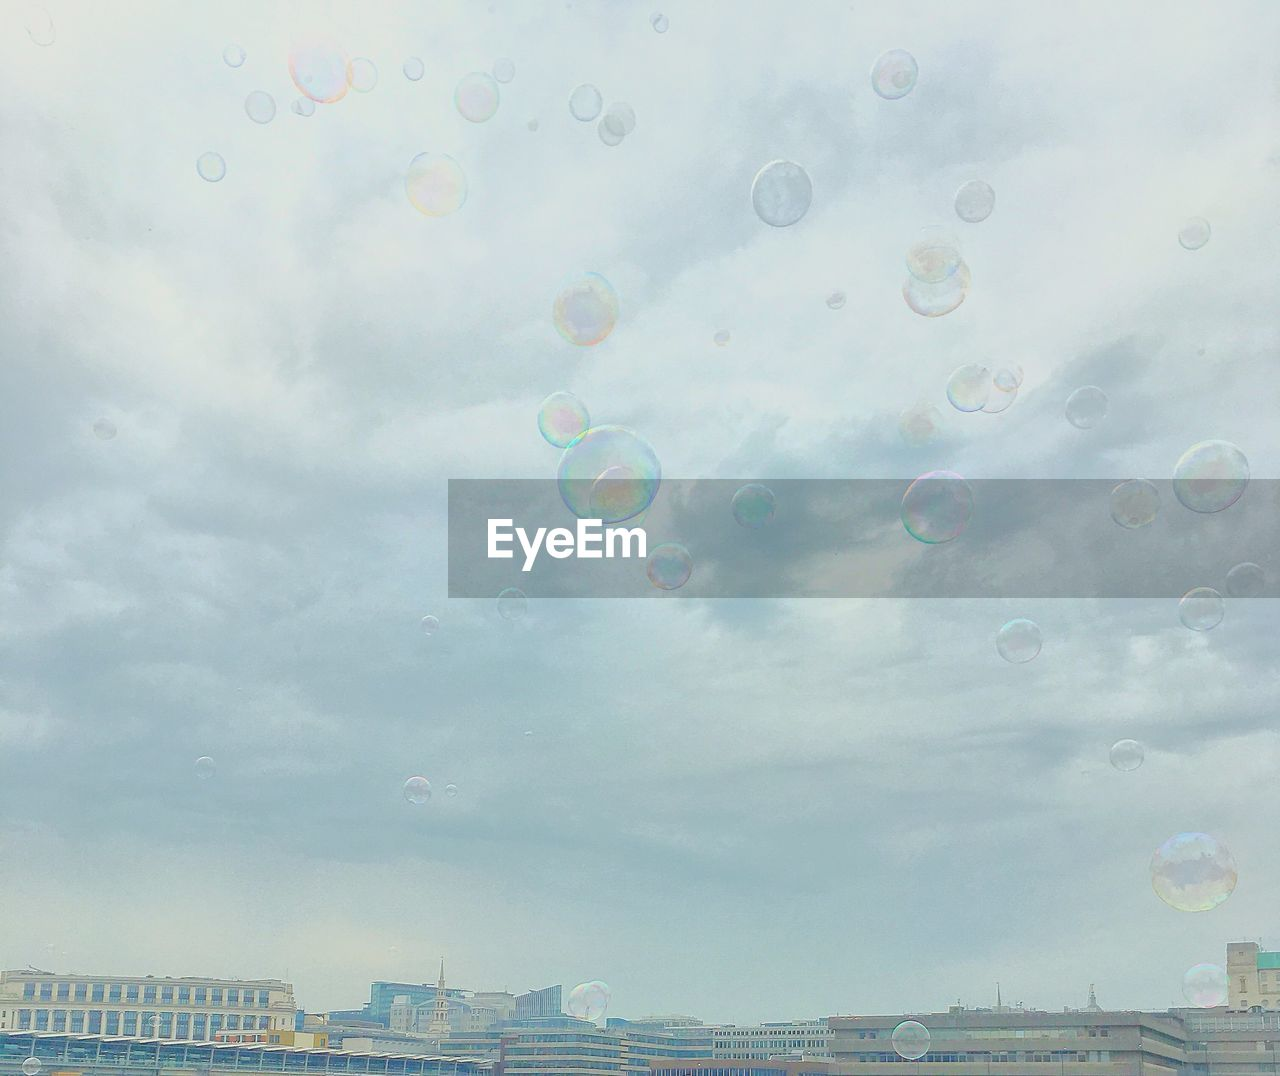 sky, architecture, built structure, building exterior, cloud - sky, nature, no people, city, bubble, building, day, water, rainbow, outdoors, multi colored, mid-air, low angle view, transparent, skyscraper